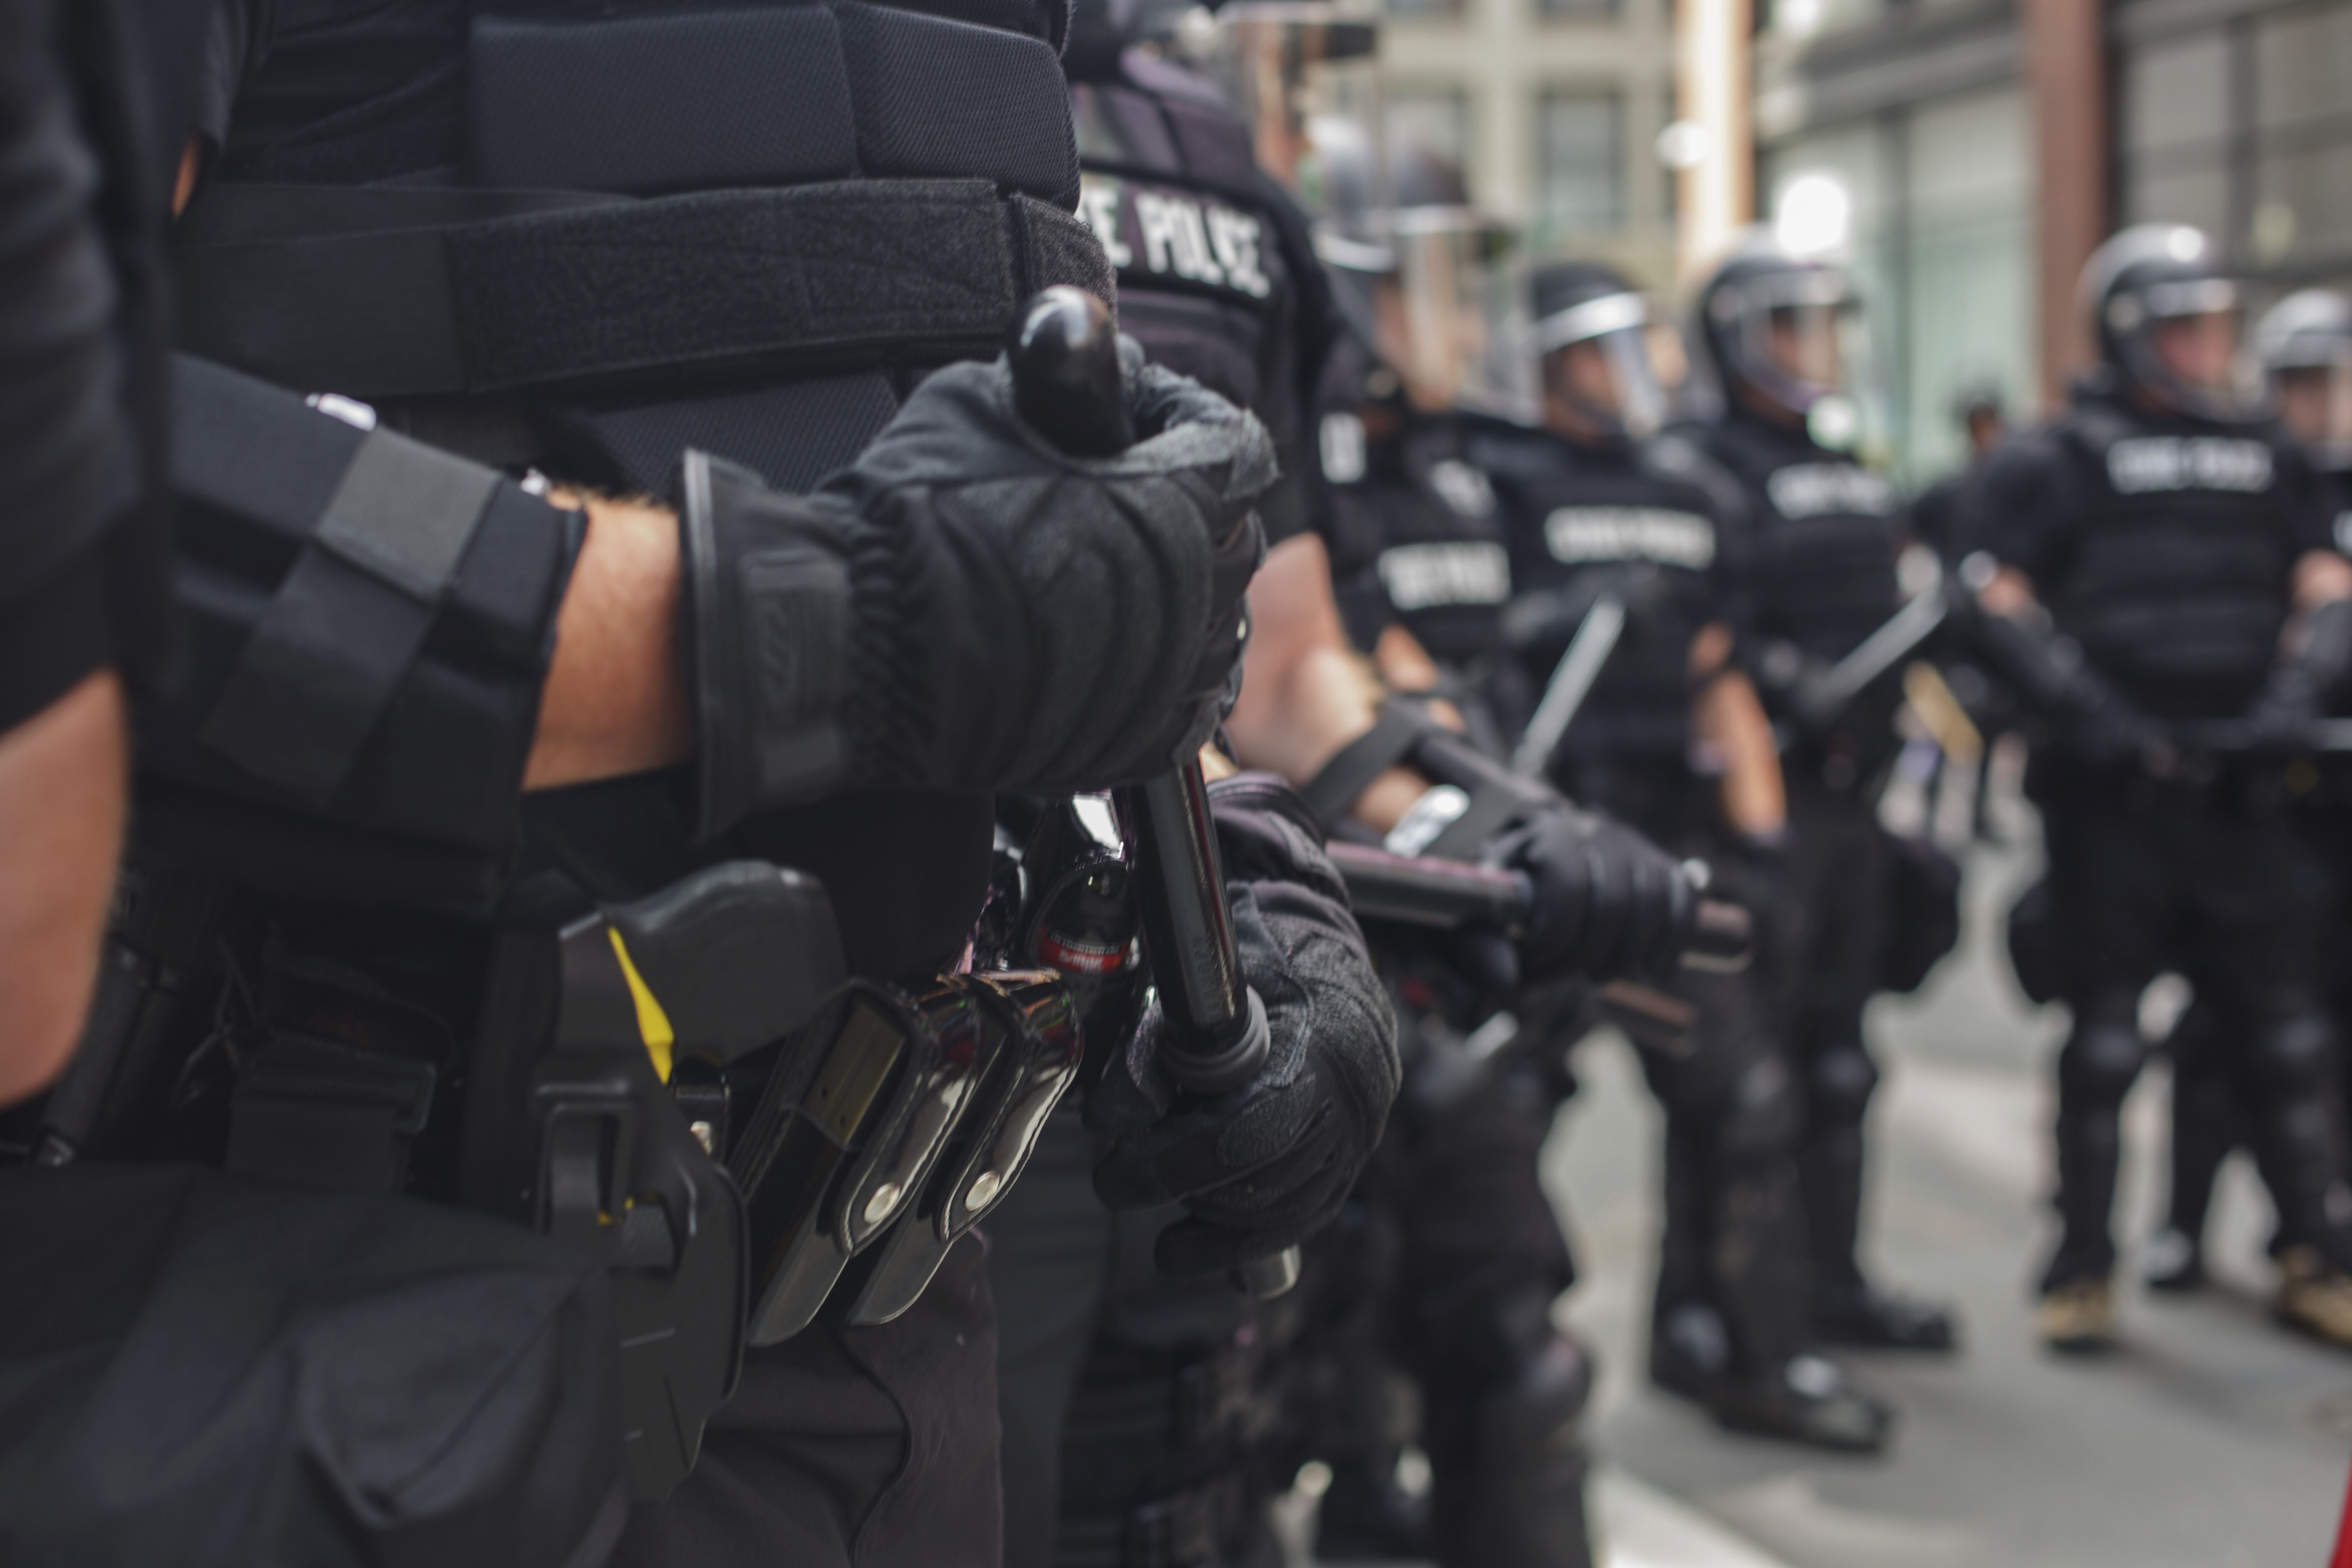 Boston police in riot gear cleared the streets of counter protesters as the police escorted Free Speech Rally attendees in paddy wagons. (Shay Horse/GroundTruth)